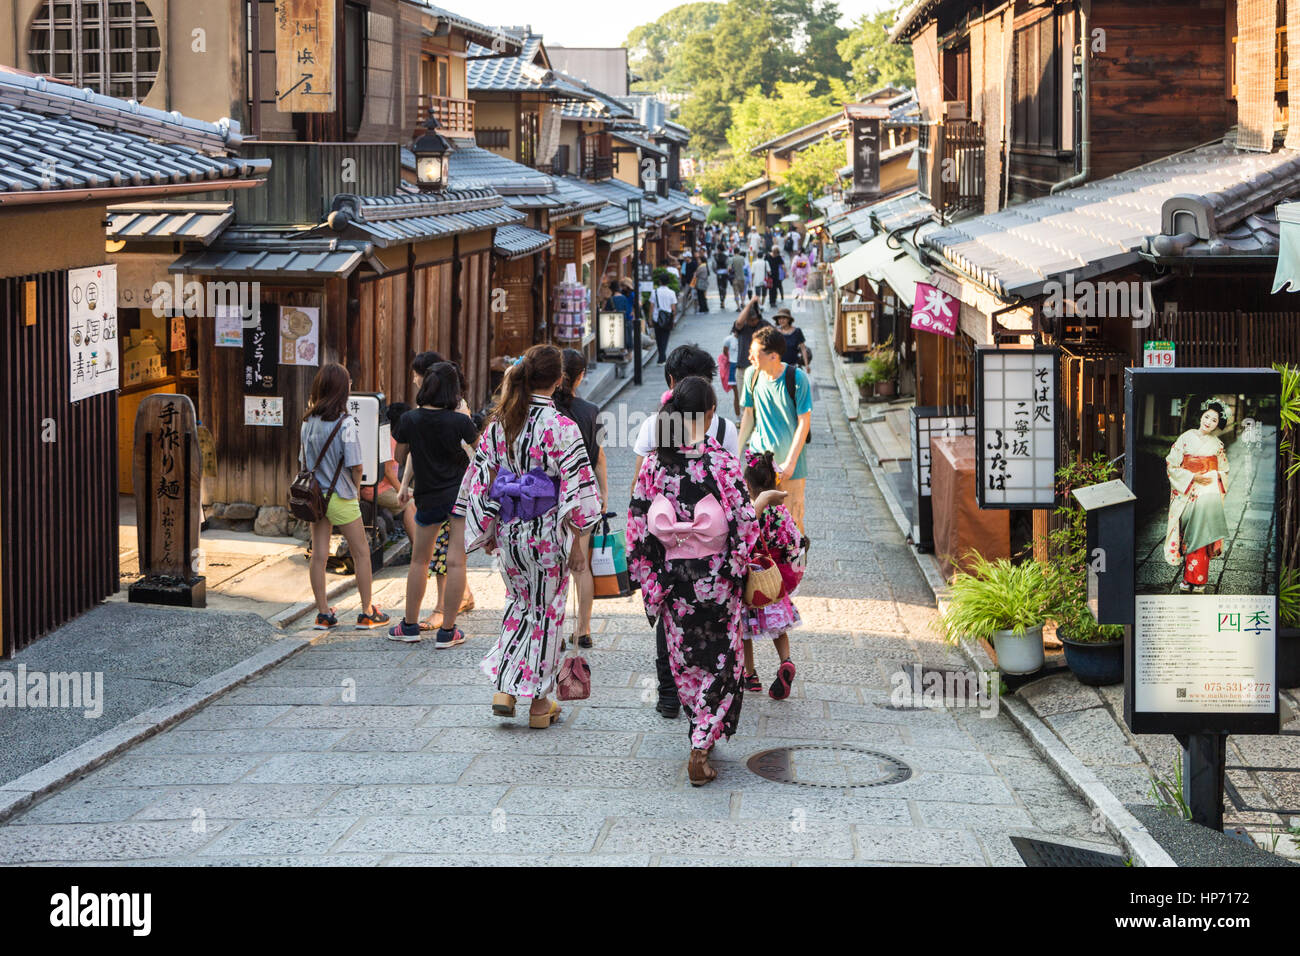 KYOTO, JAPAN - AUGUST 11, 2015: Young women wearing traditional Japanese Kimono walk in the street of Gion, Kyoto Stock Photo